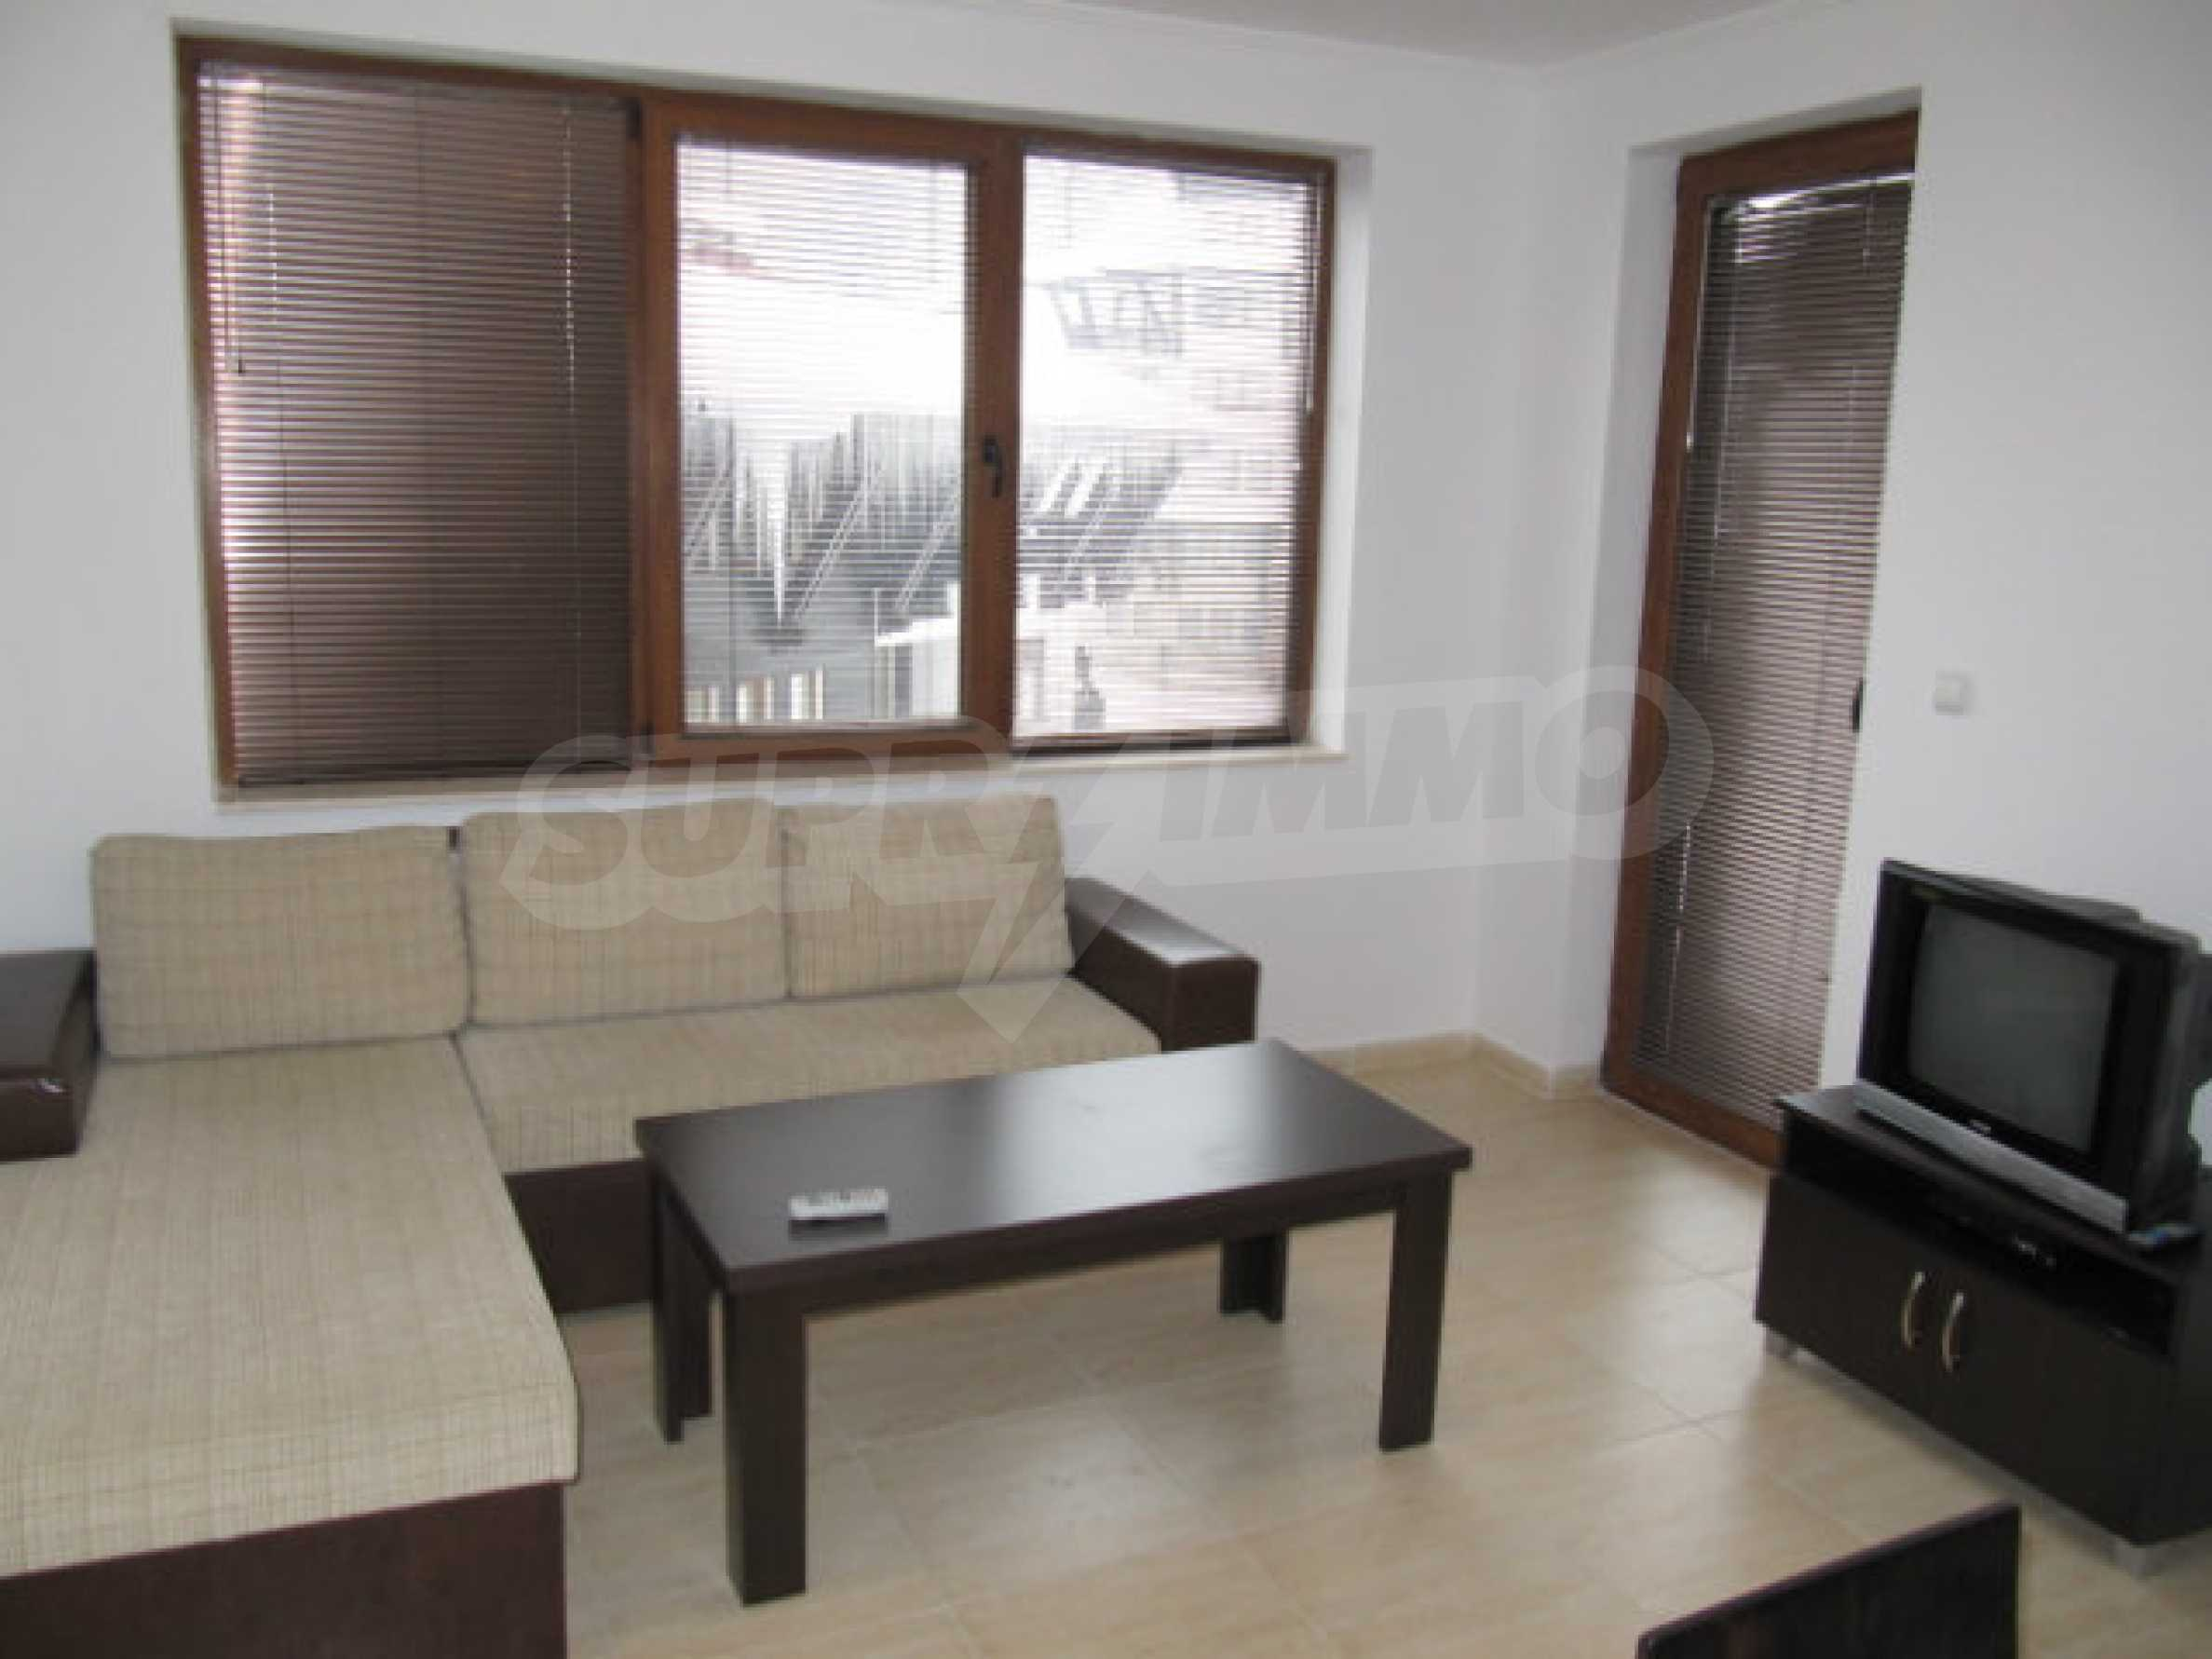 One-bedroom apartment in Grand Monastery complex 5